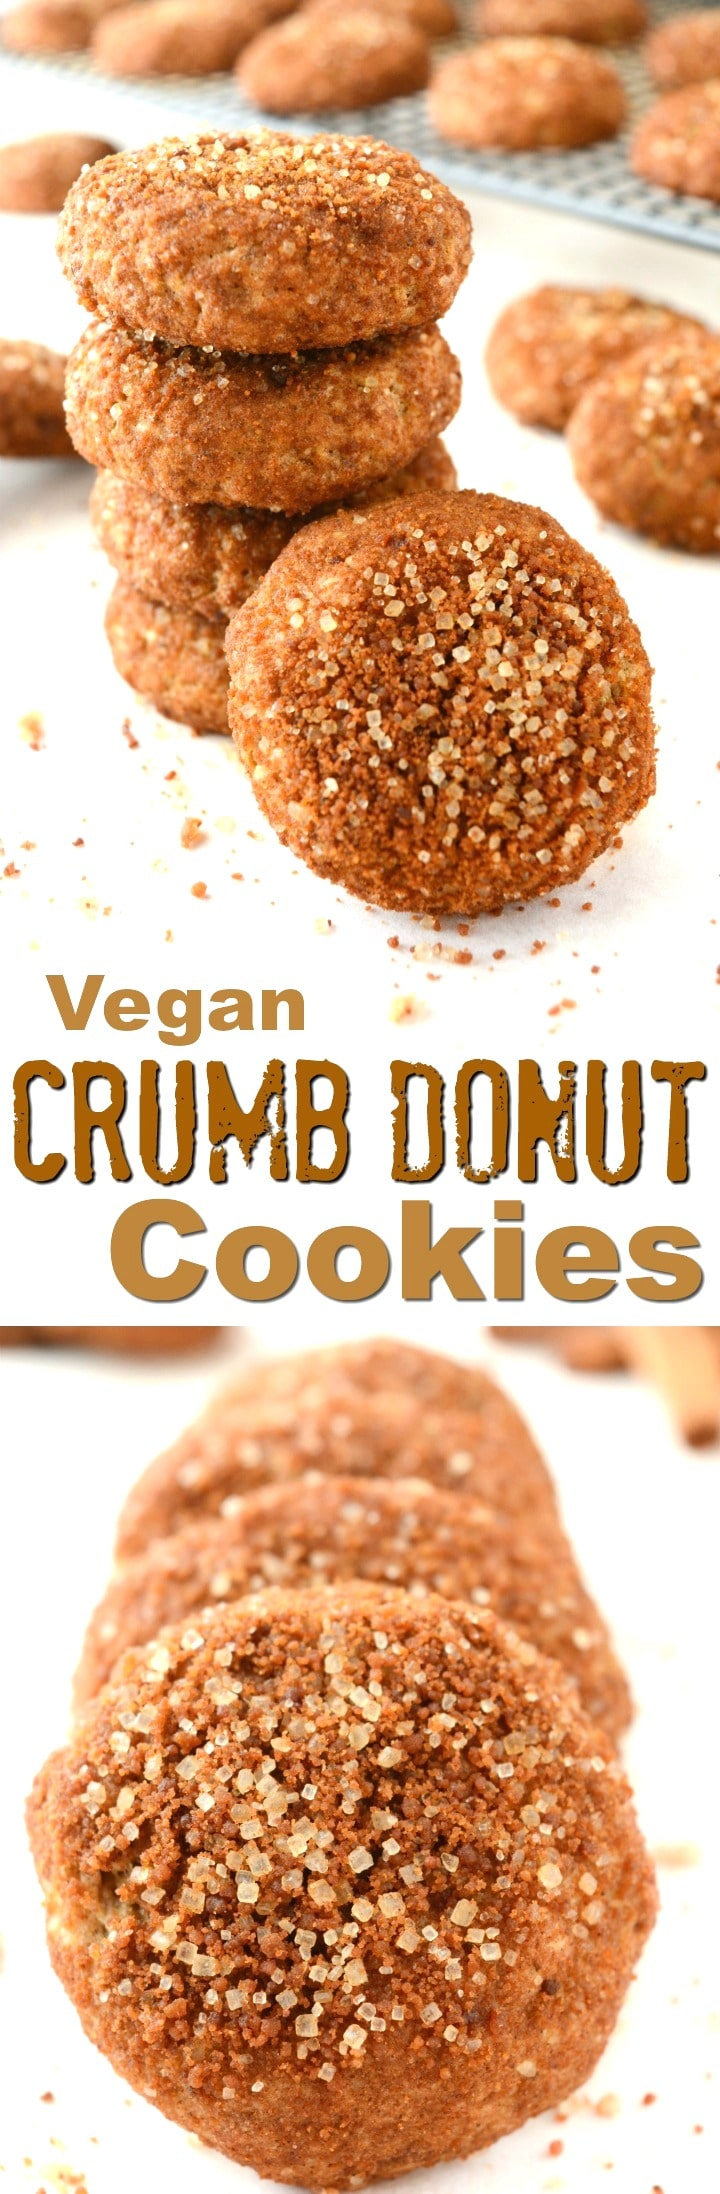 Easy Vegan Crumb Donut Cookies are covered in a cinnamon and sugar coating! The inside is soft and tender with a subtle hint of rich buttery goodness. Leave those packaged donuts at the store and make some healthier, egg and dairy free cookies at home!